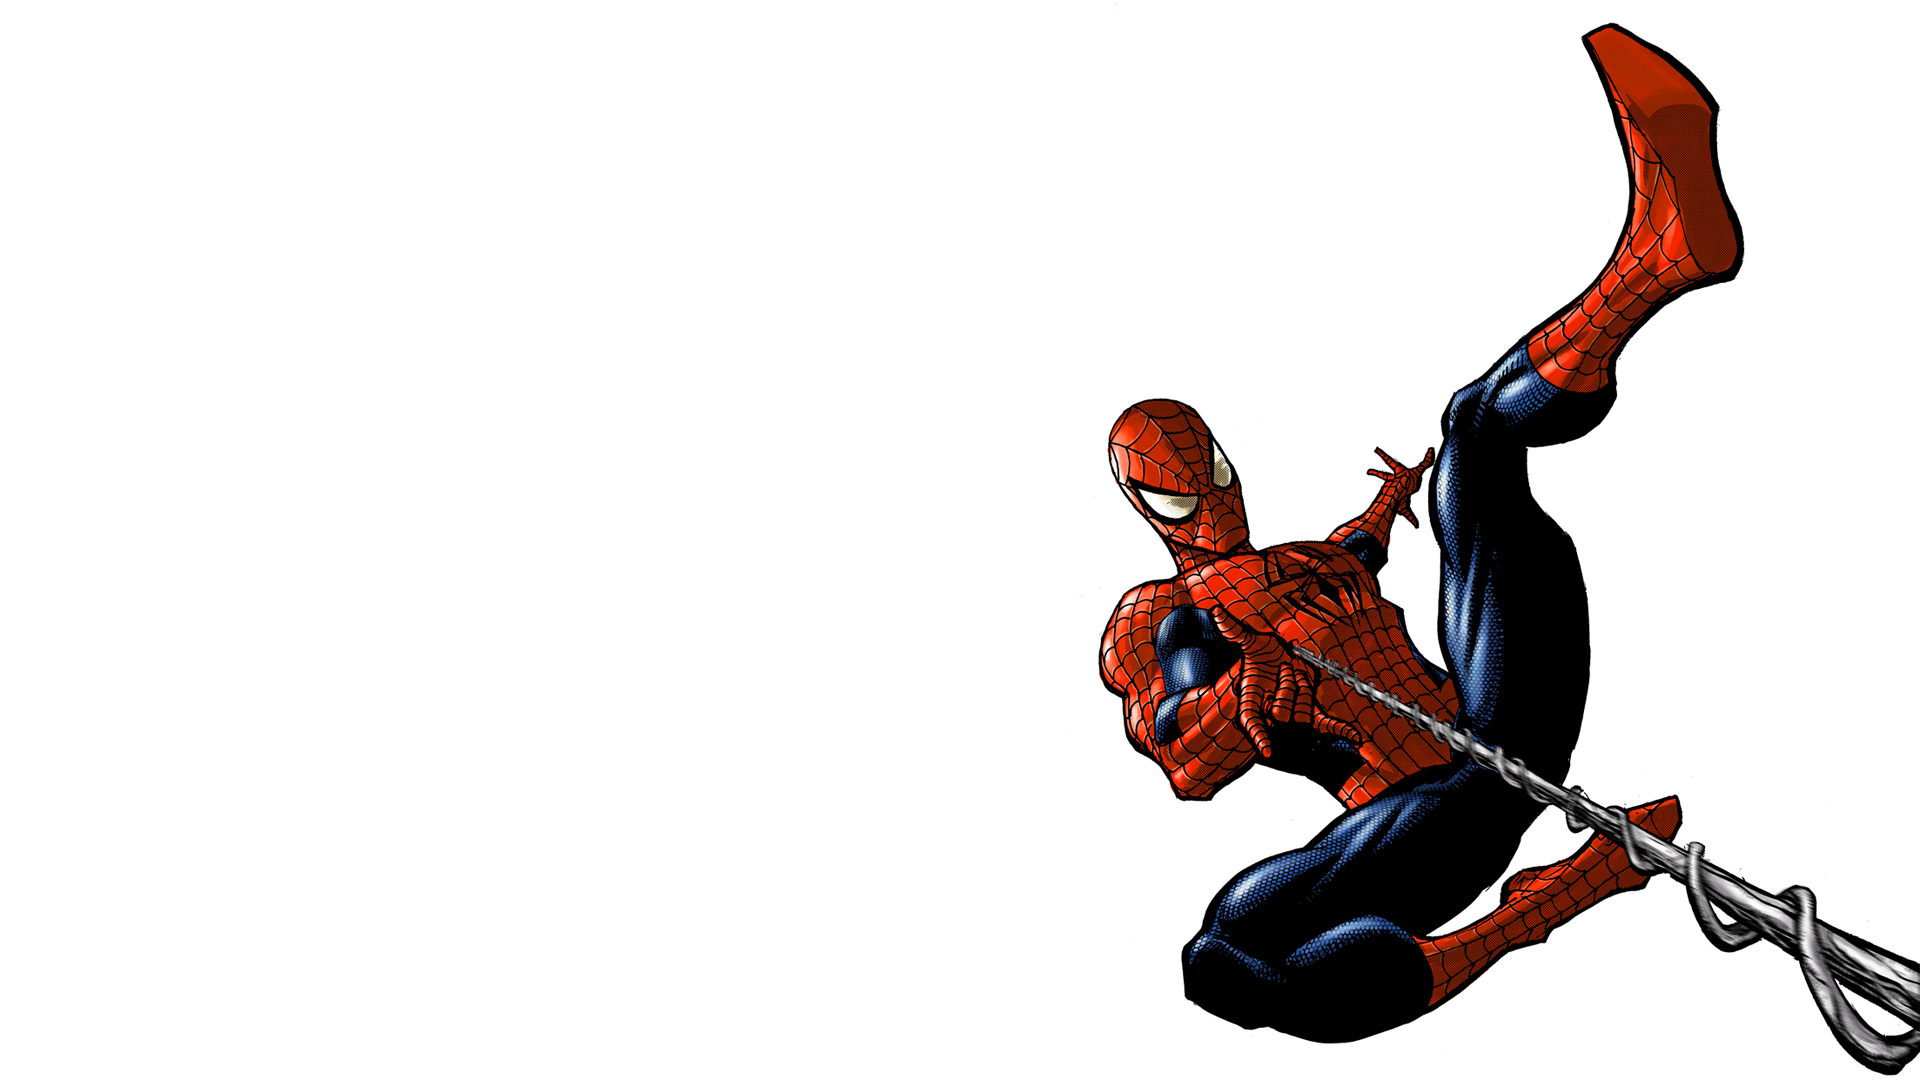 Amazing Spiderman Wallpaper Quotes Download Free Spiderman Backgrounds Pixelstalk Net